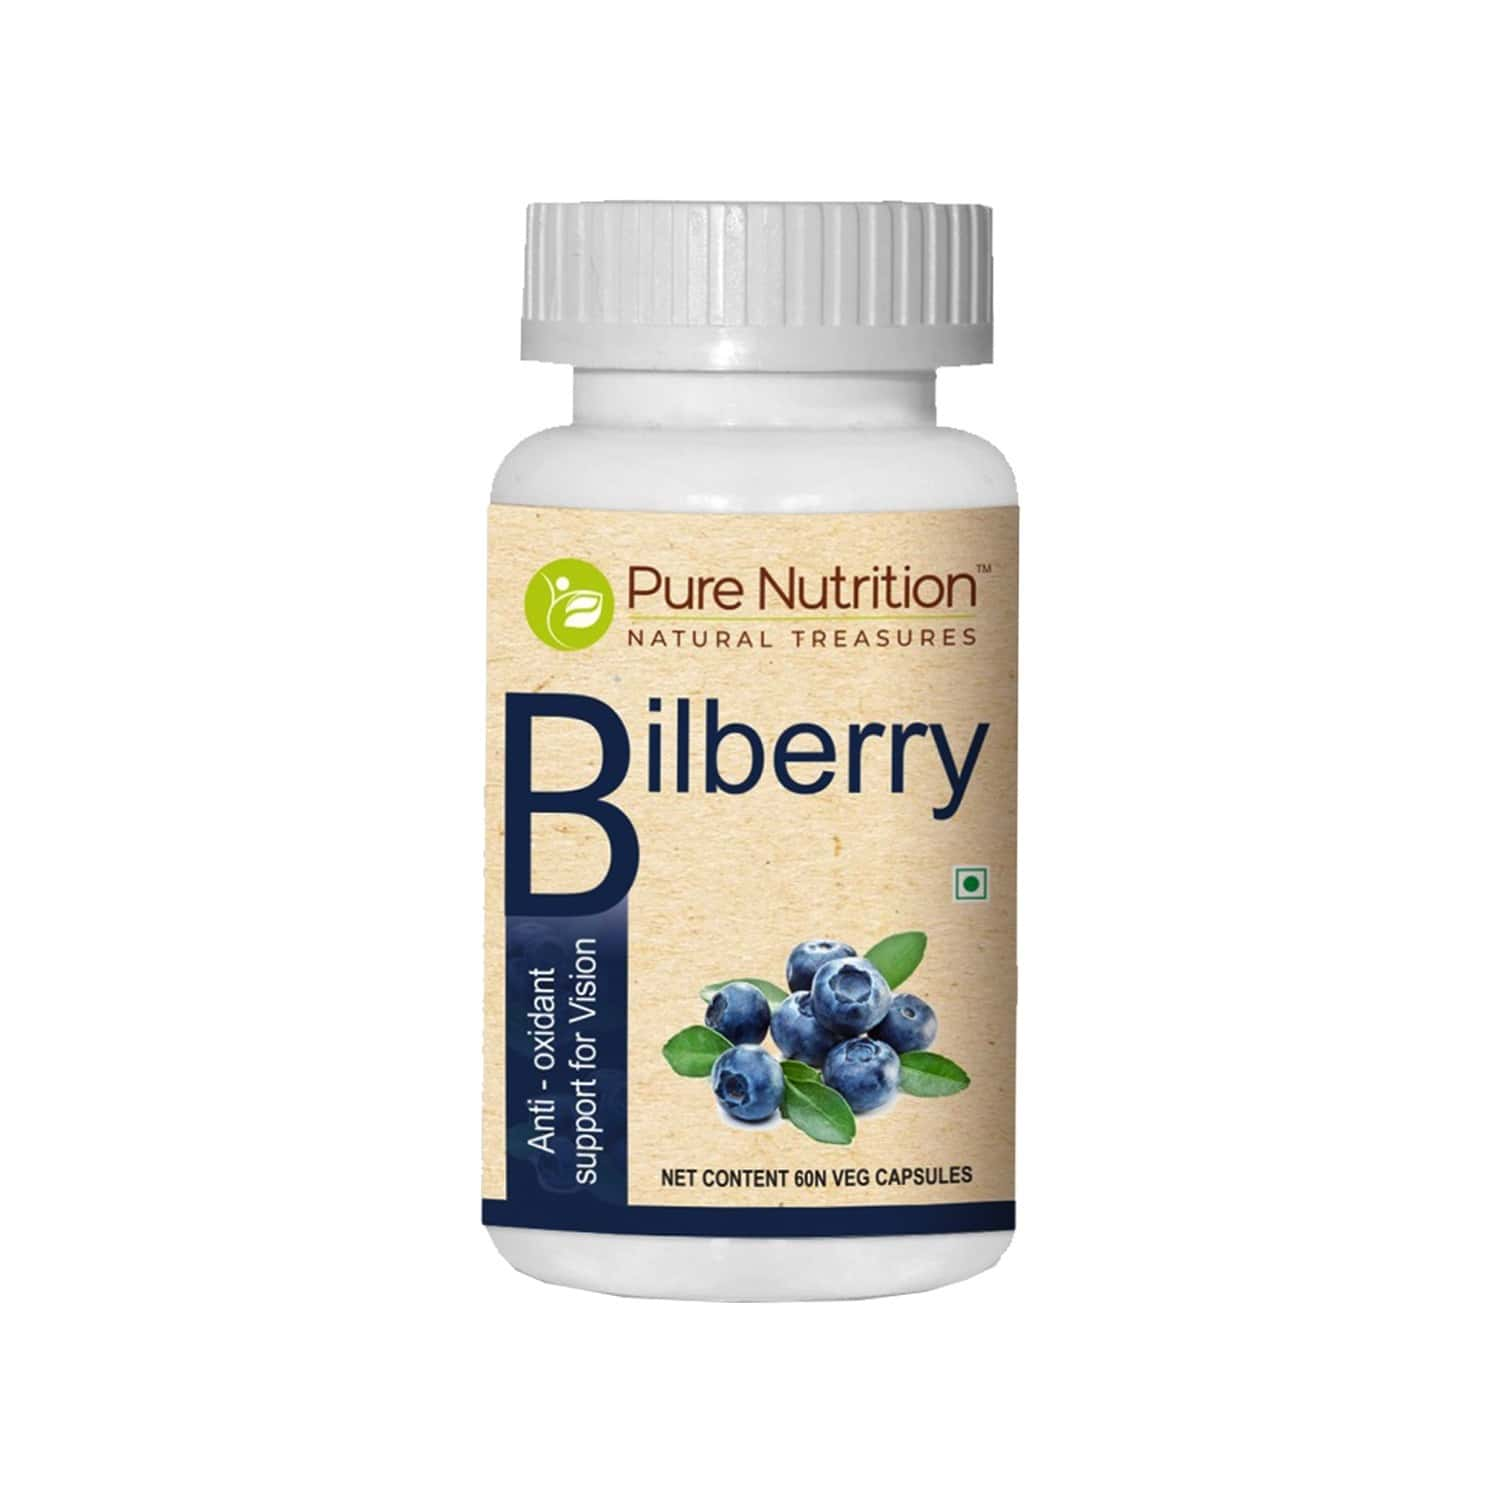 Pure Nutrition Bilberry | Natural Antioxidant Support For Vision| With Bilberry Extracts & Carrot Powder| Maintains Healthy Vision & Protects From Oxidative Damage From Blue Light| 60 Veg Capsules